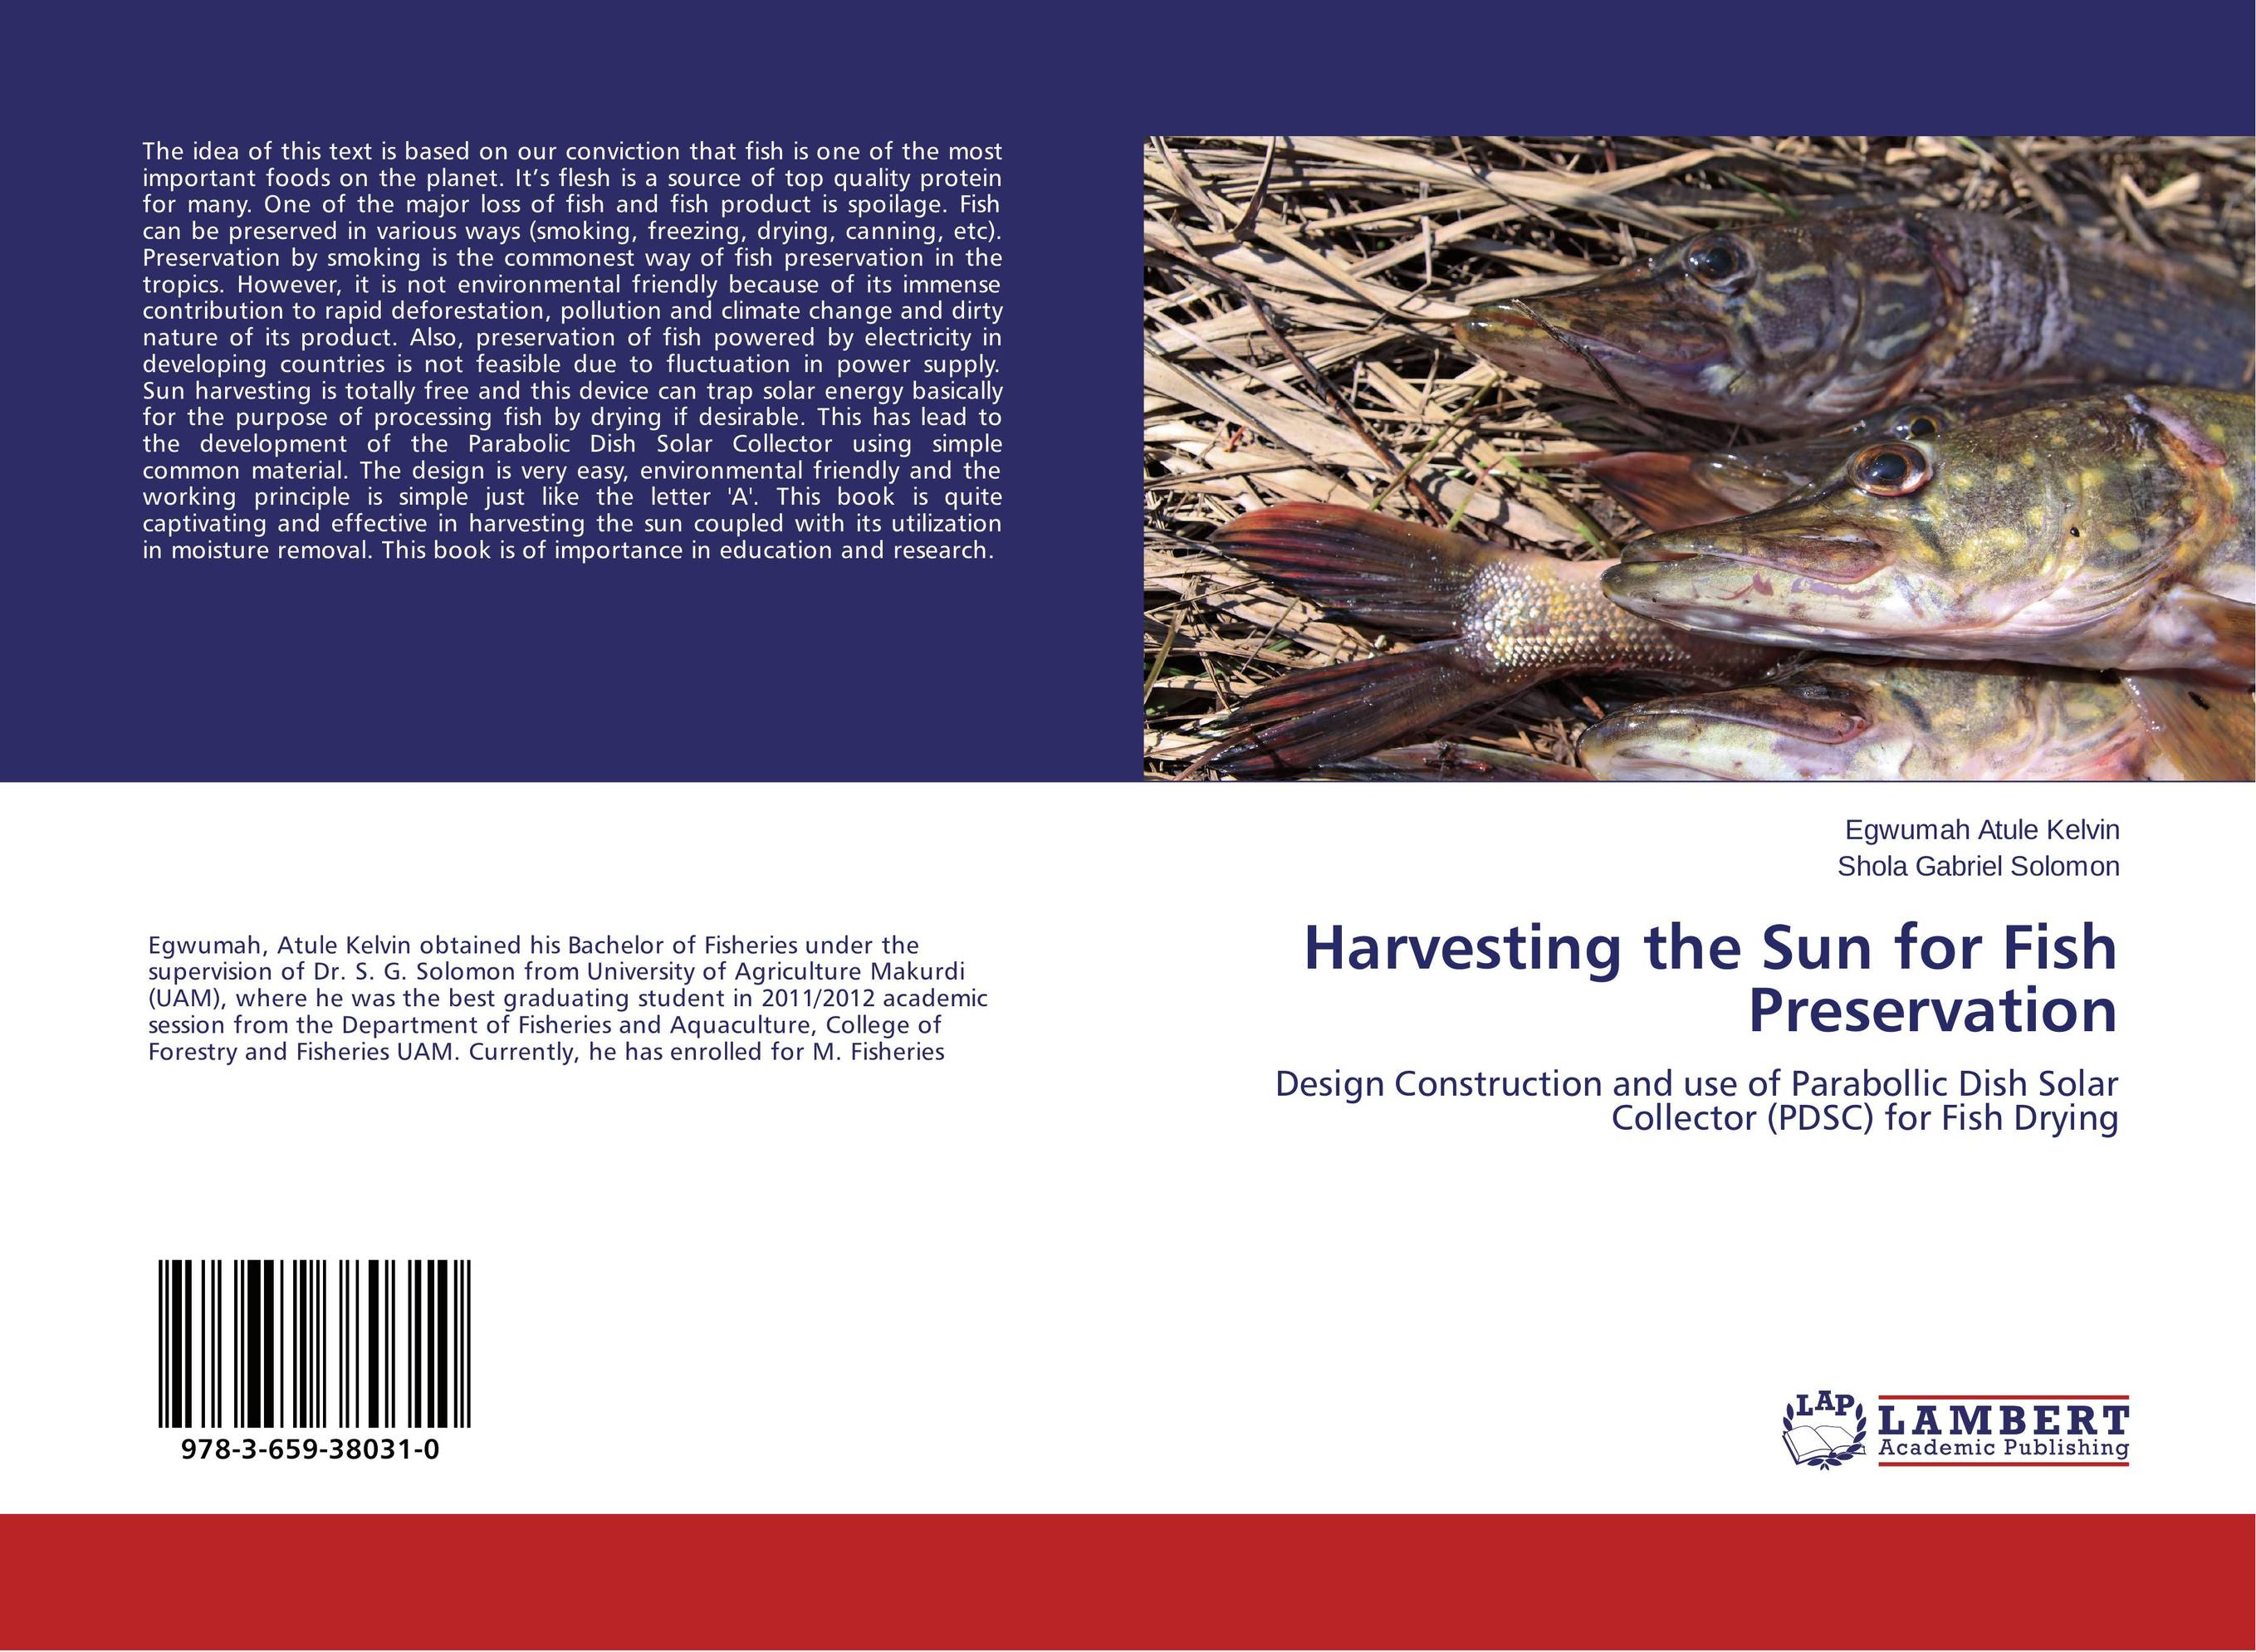 Harvesting the Sun for Fish Preservation les bratt fish canning handbook